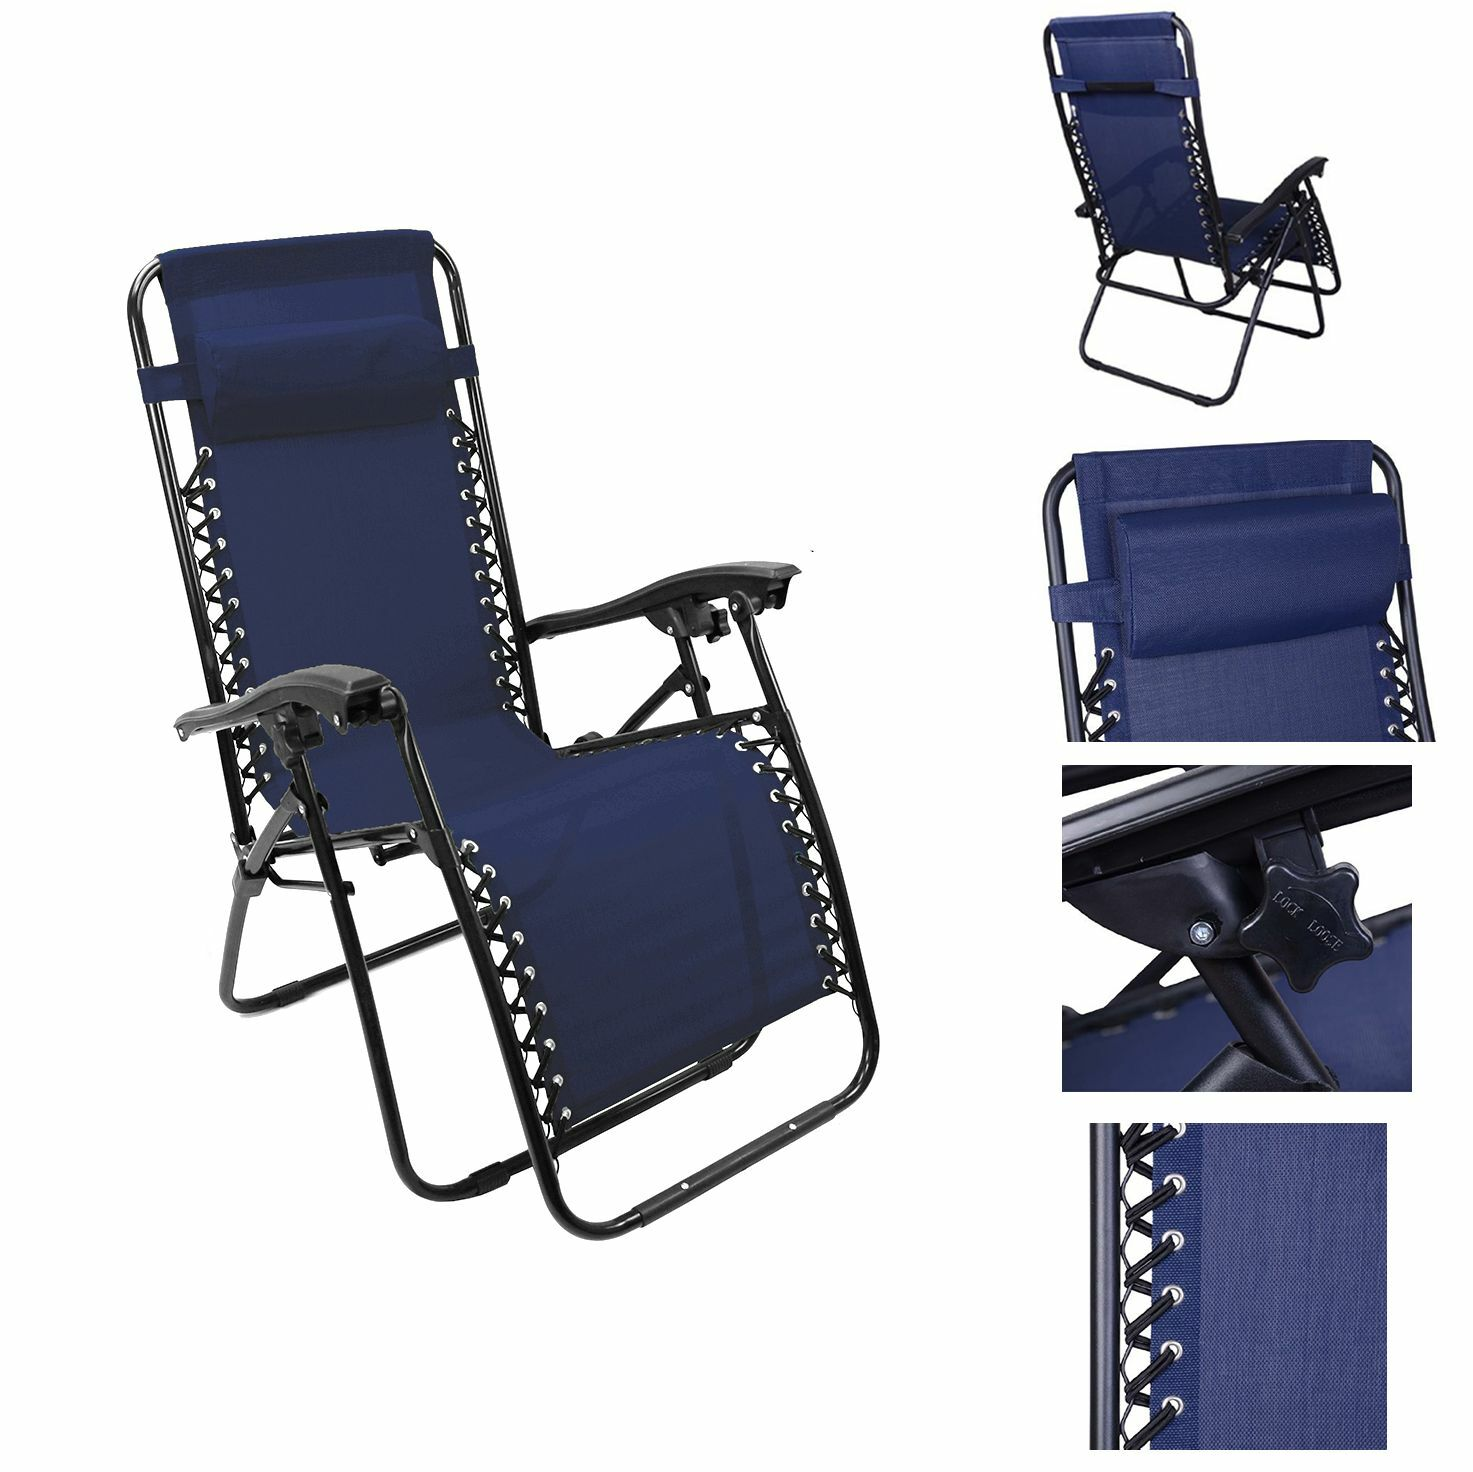 patio recliner lounge chair with desk attached uk reclining pool beach outdoor